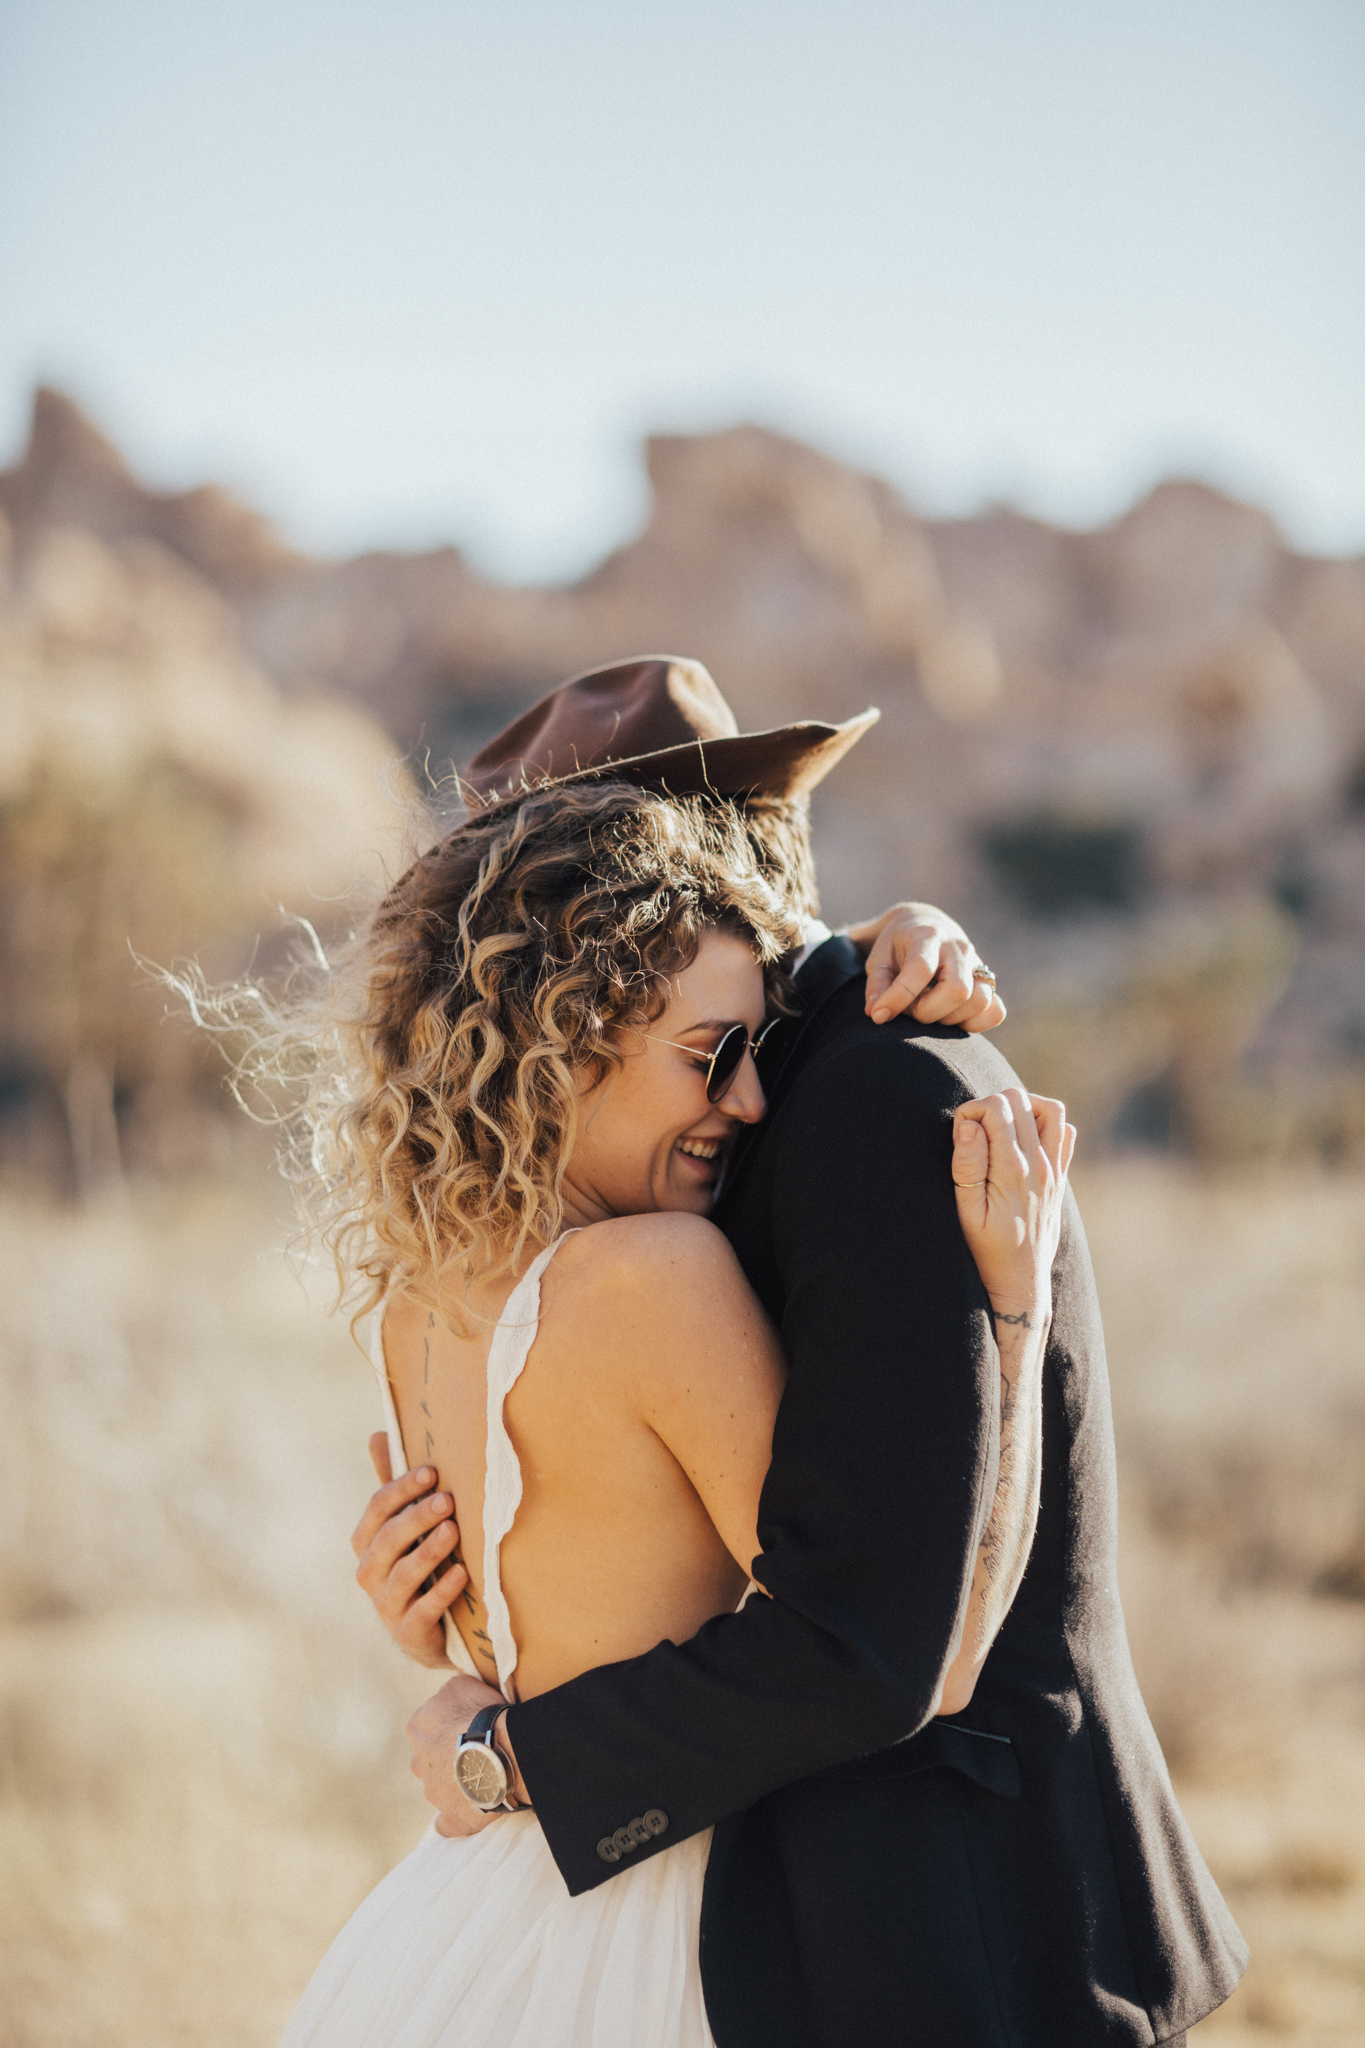 Moody elopement wedding photography in desert